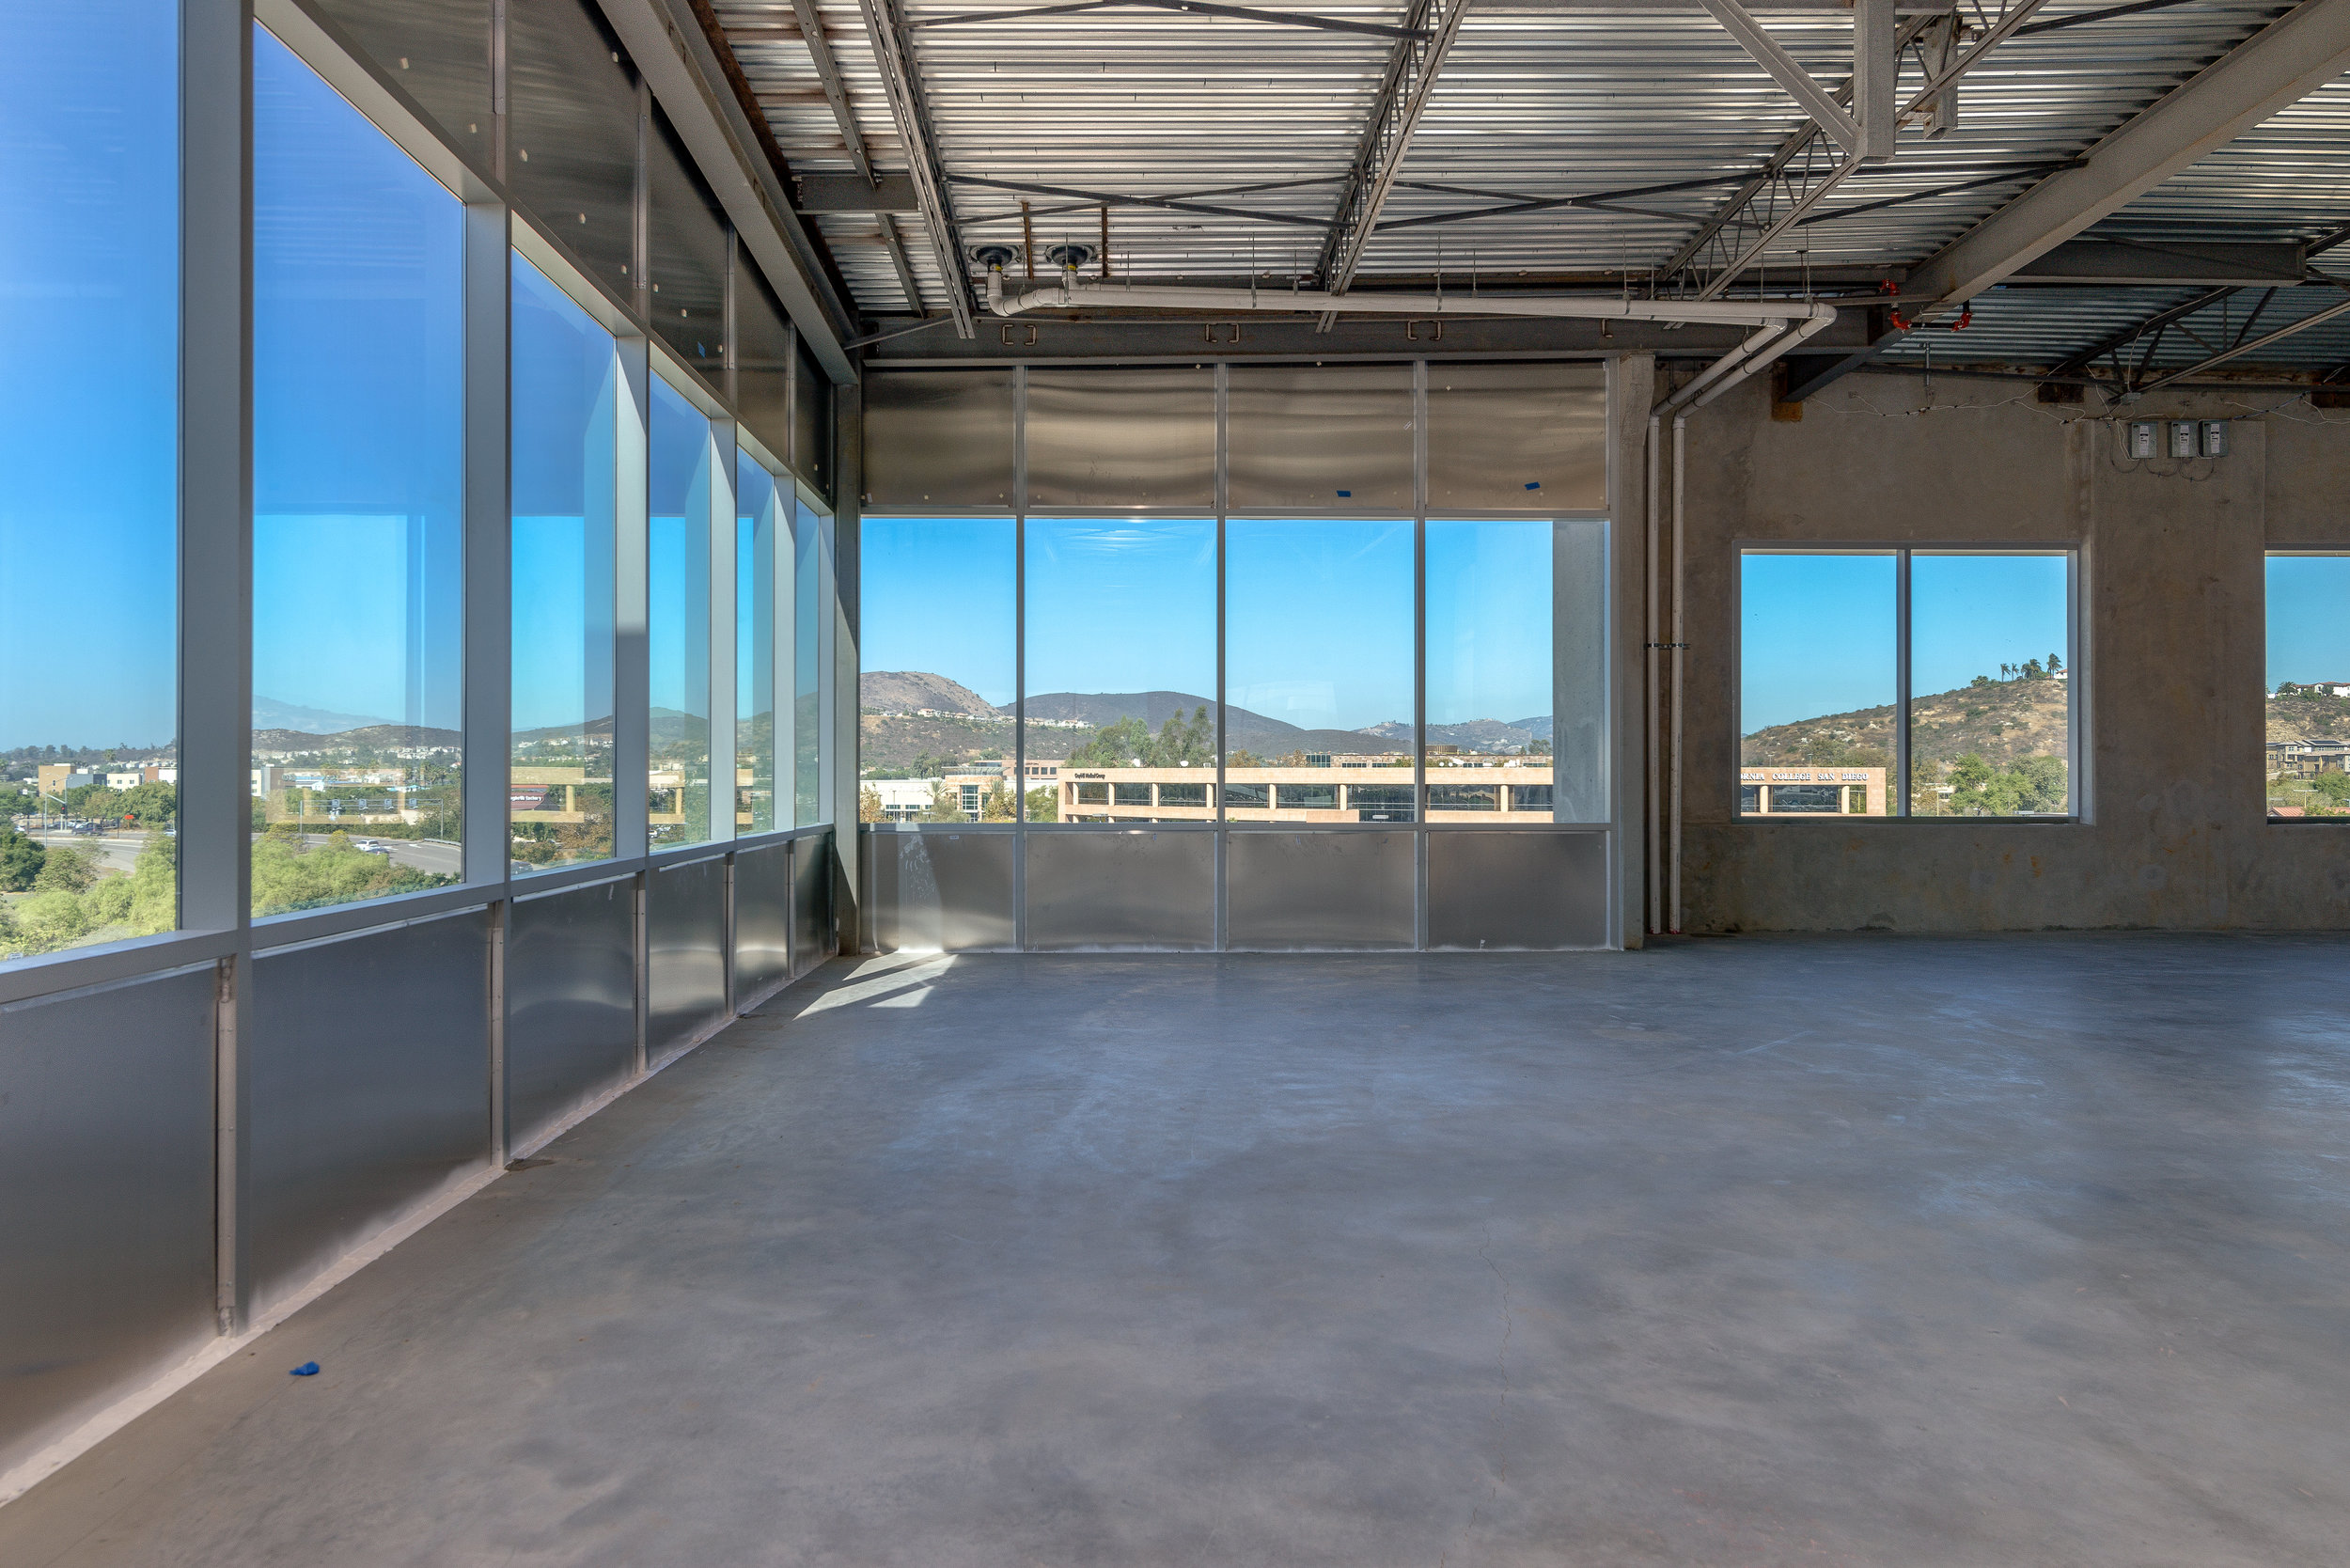 North City Office-Pima - 3rd Floor 3 - Colliers : photo by Lance Emerson.jpg